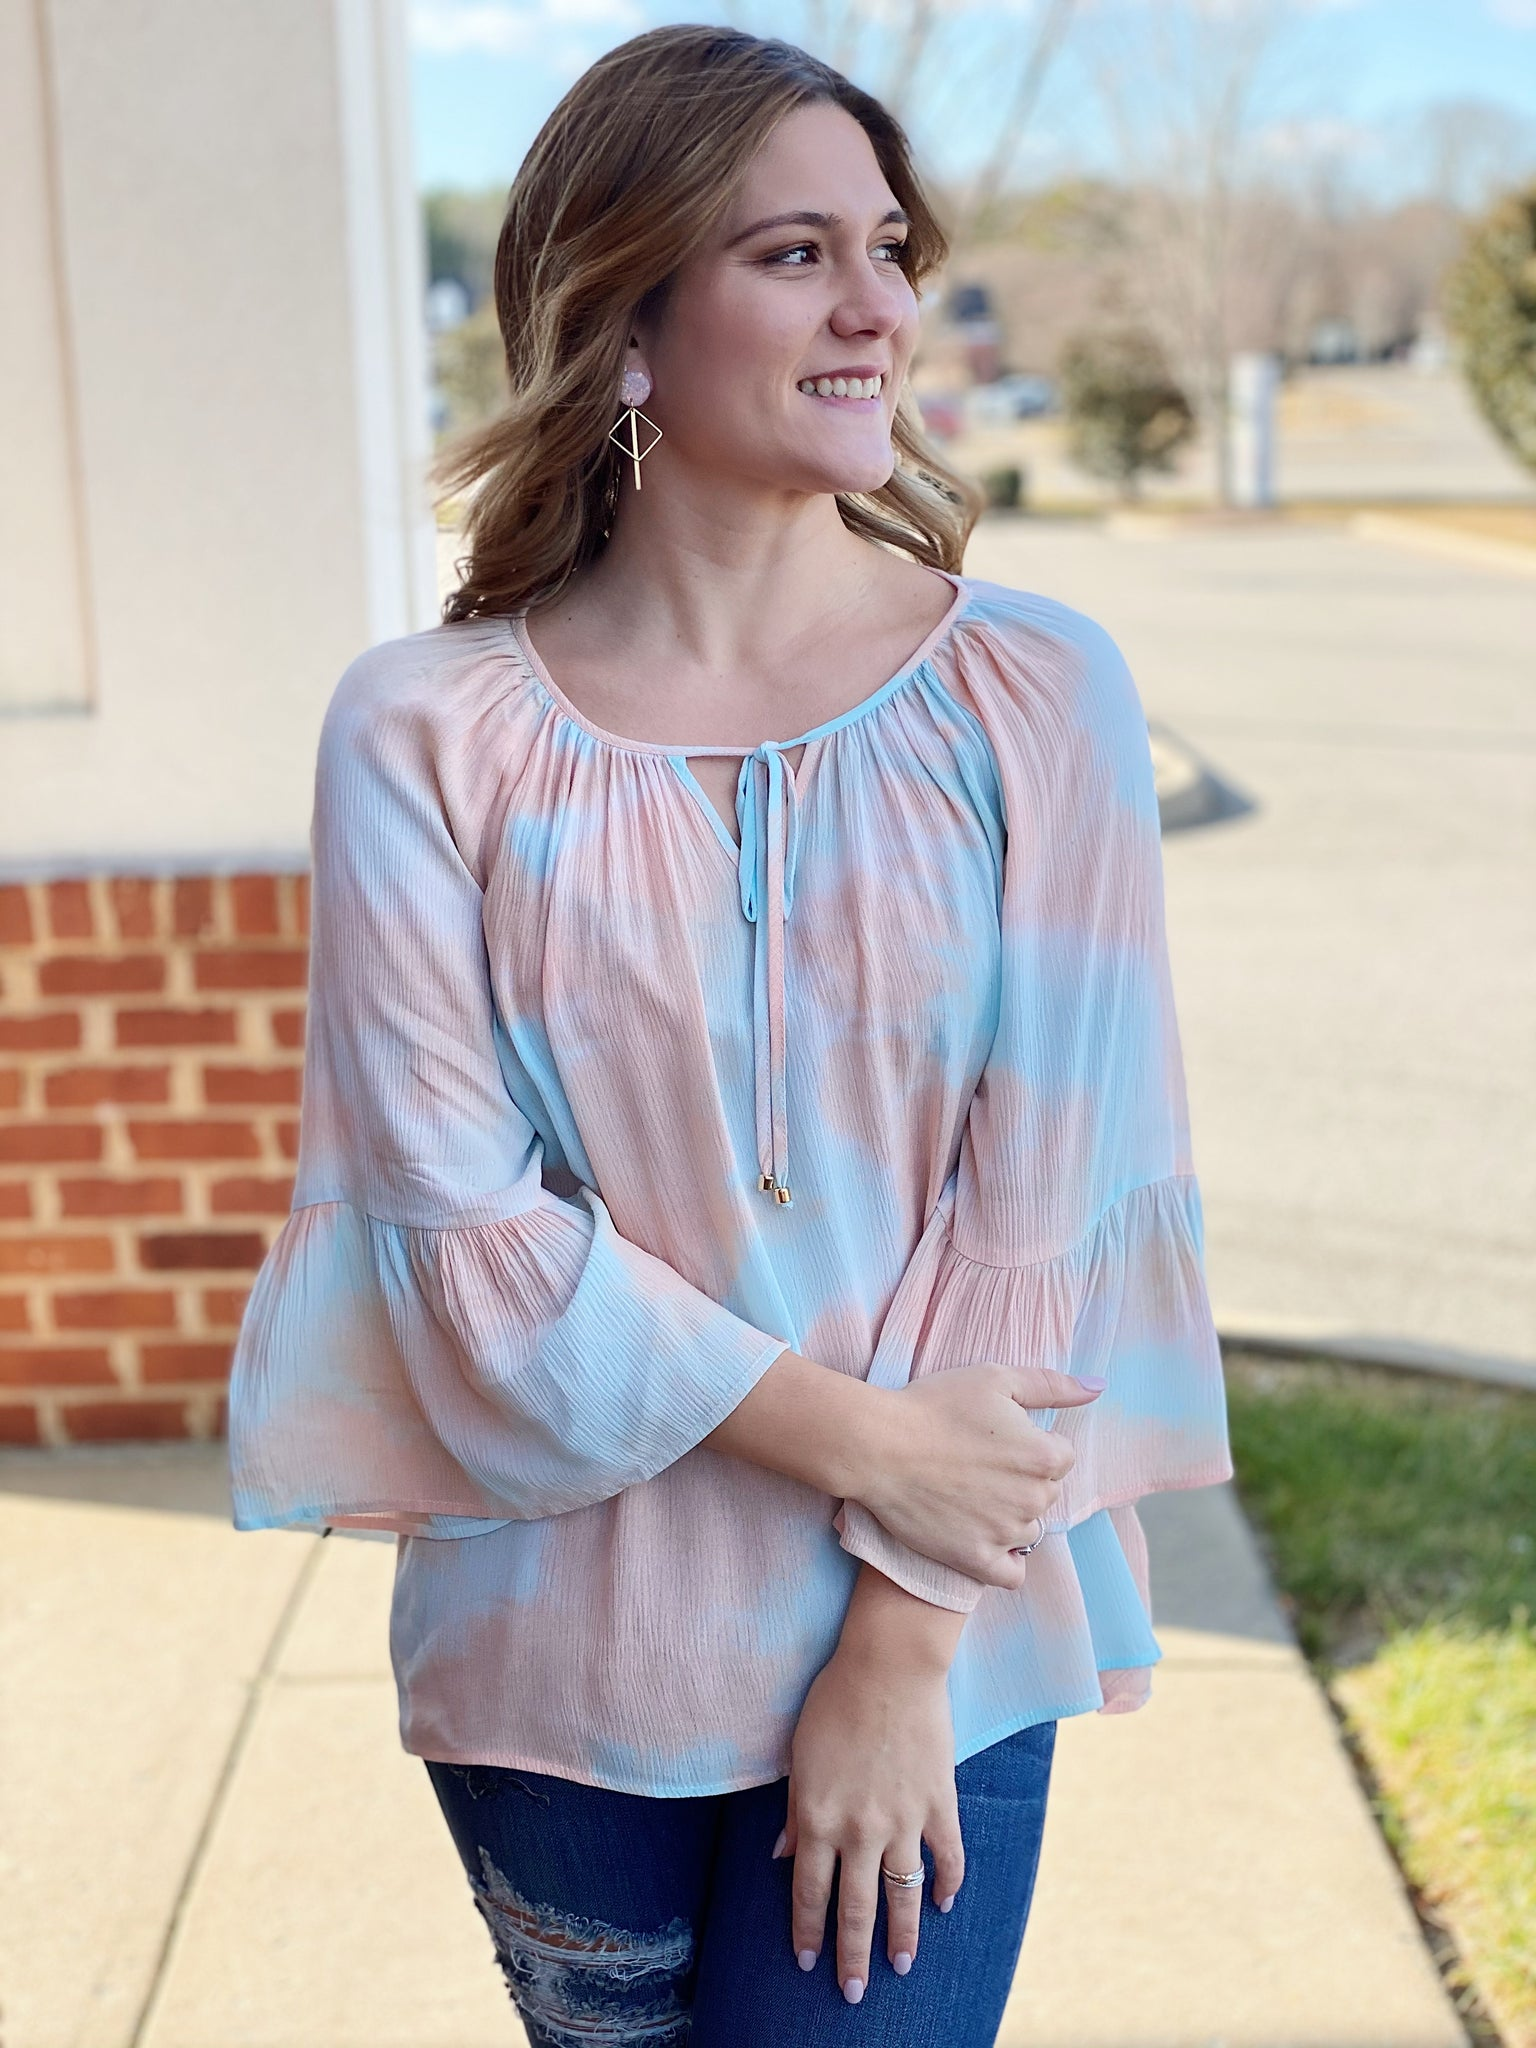 The Reghan Top in Salmon/Mint